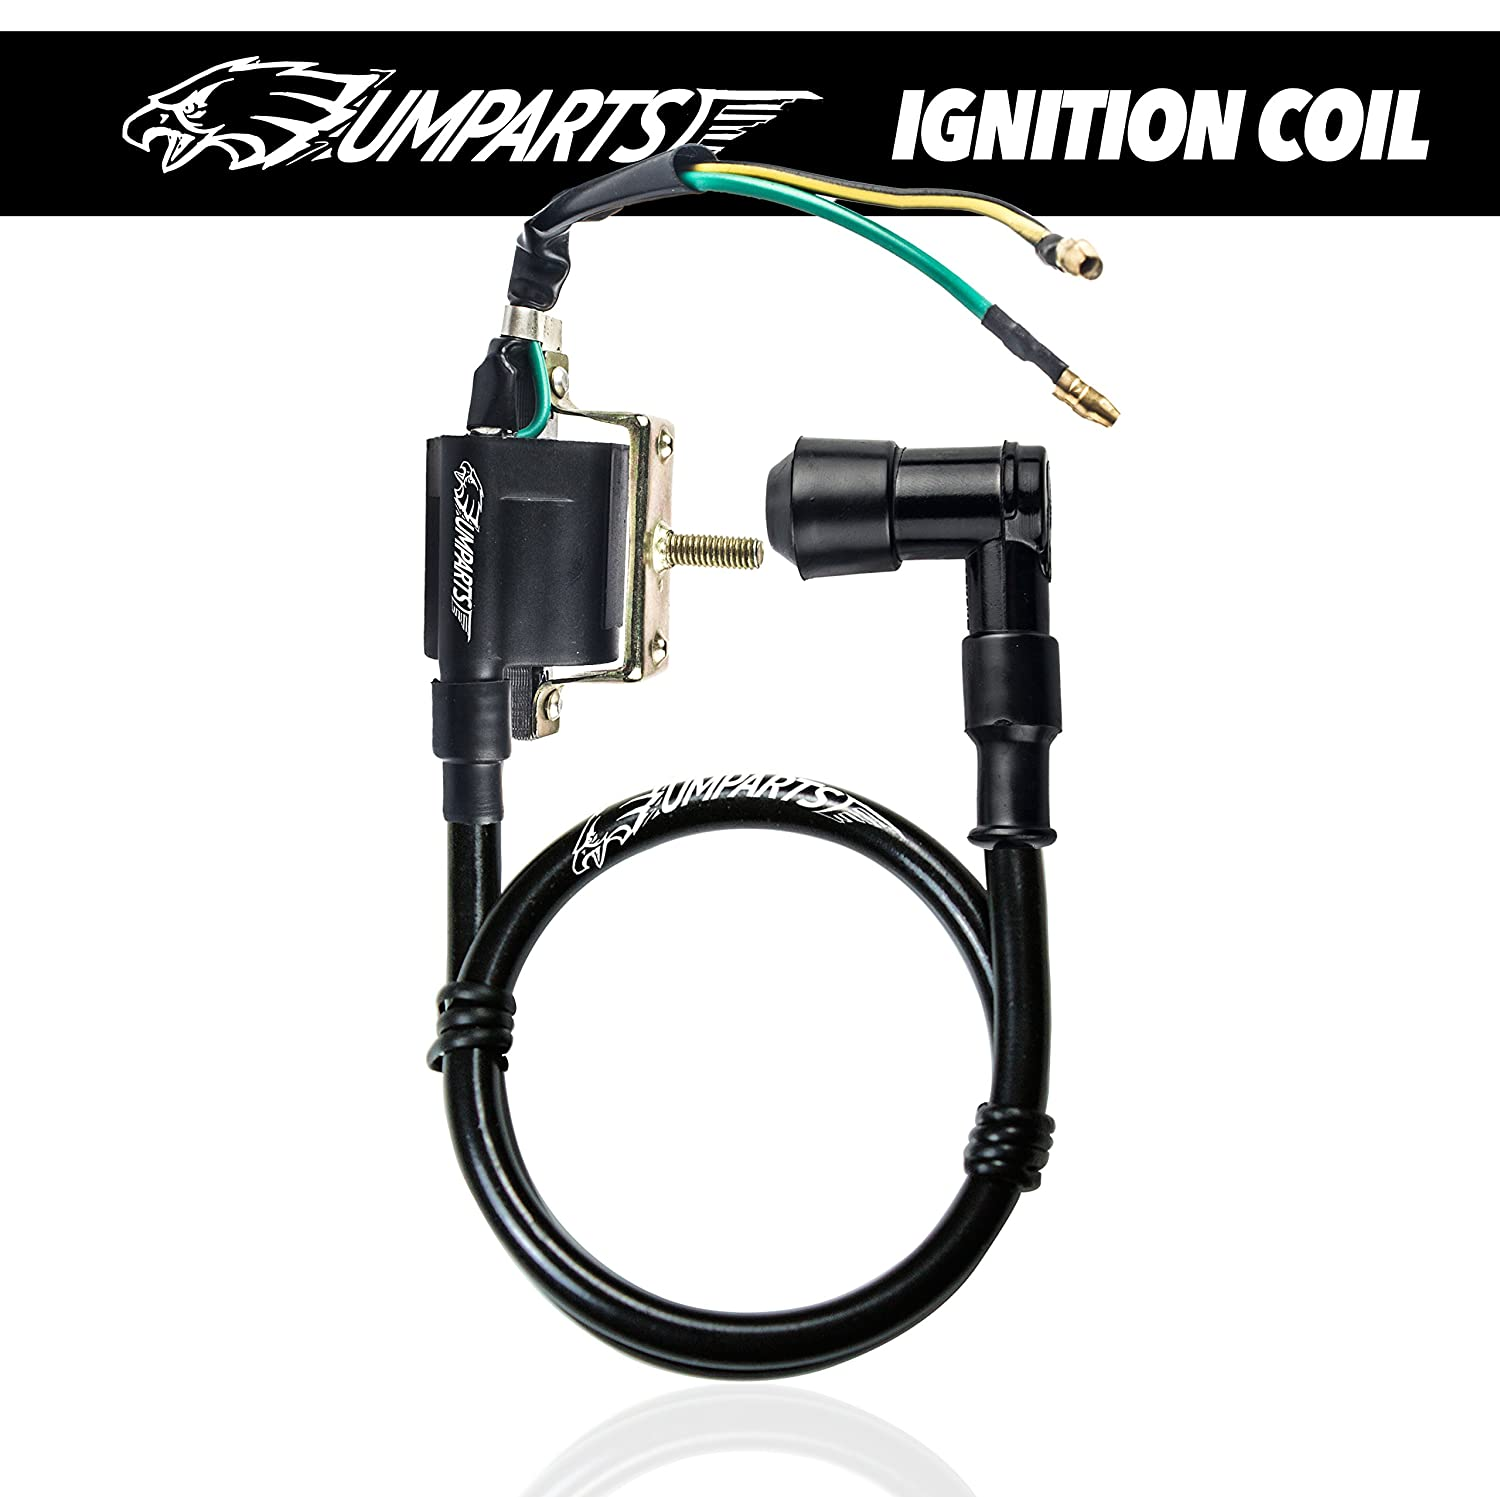 Ic2 Umparts 2 Wire Pin Black Ignition Coil Spark Plug Diagram Tao Ata 110d Parts For Taotao Youth Kids Atv 4 Quad Wheeler 110cc 110 D